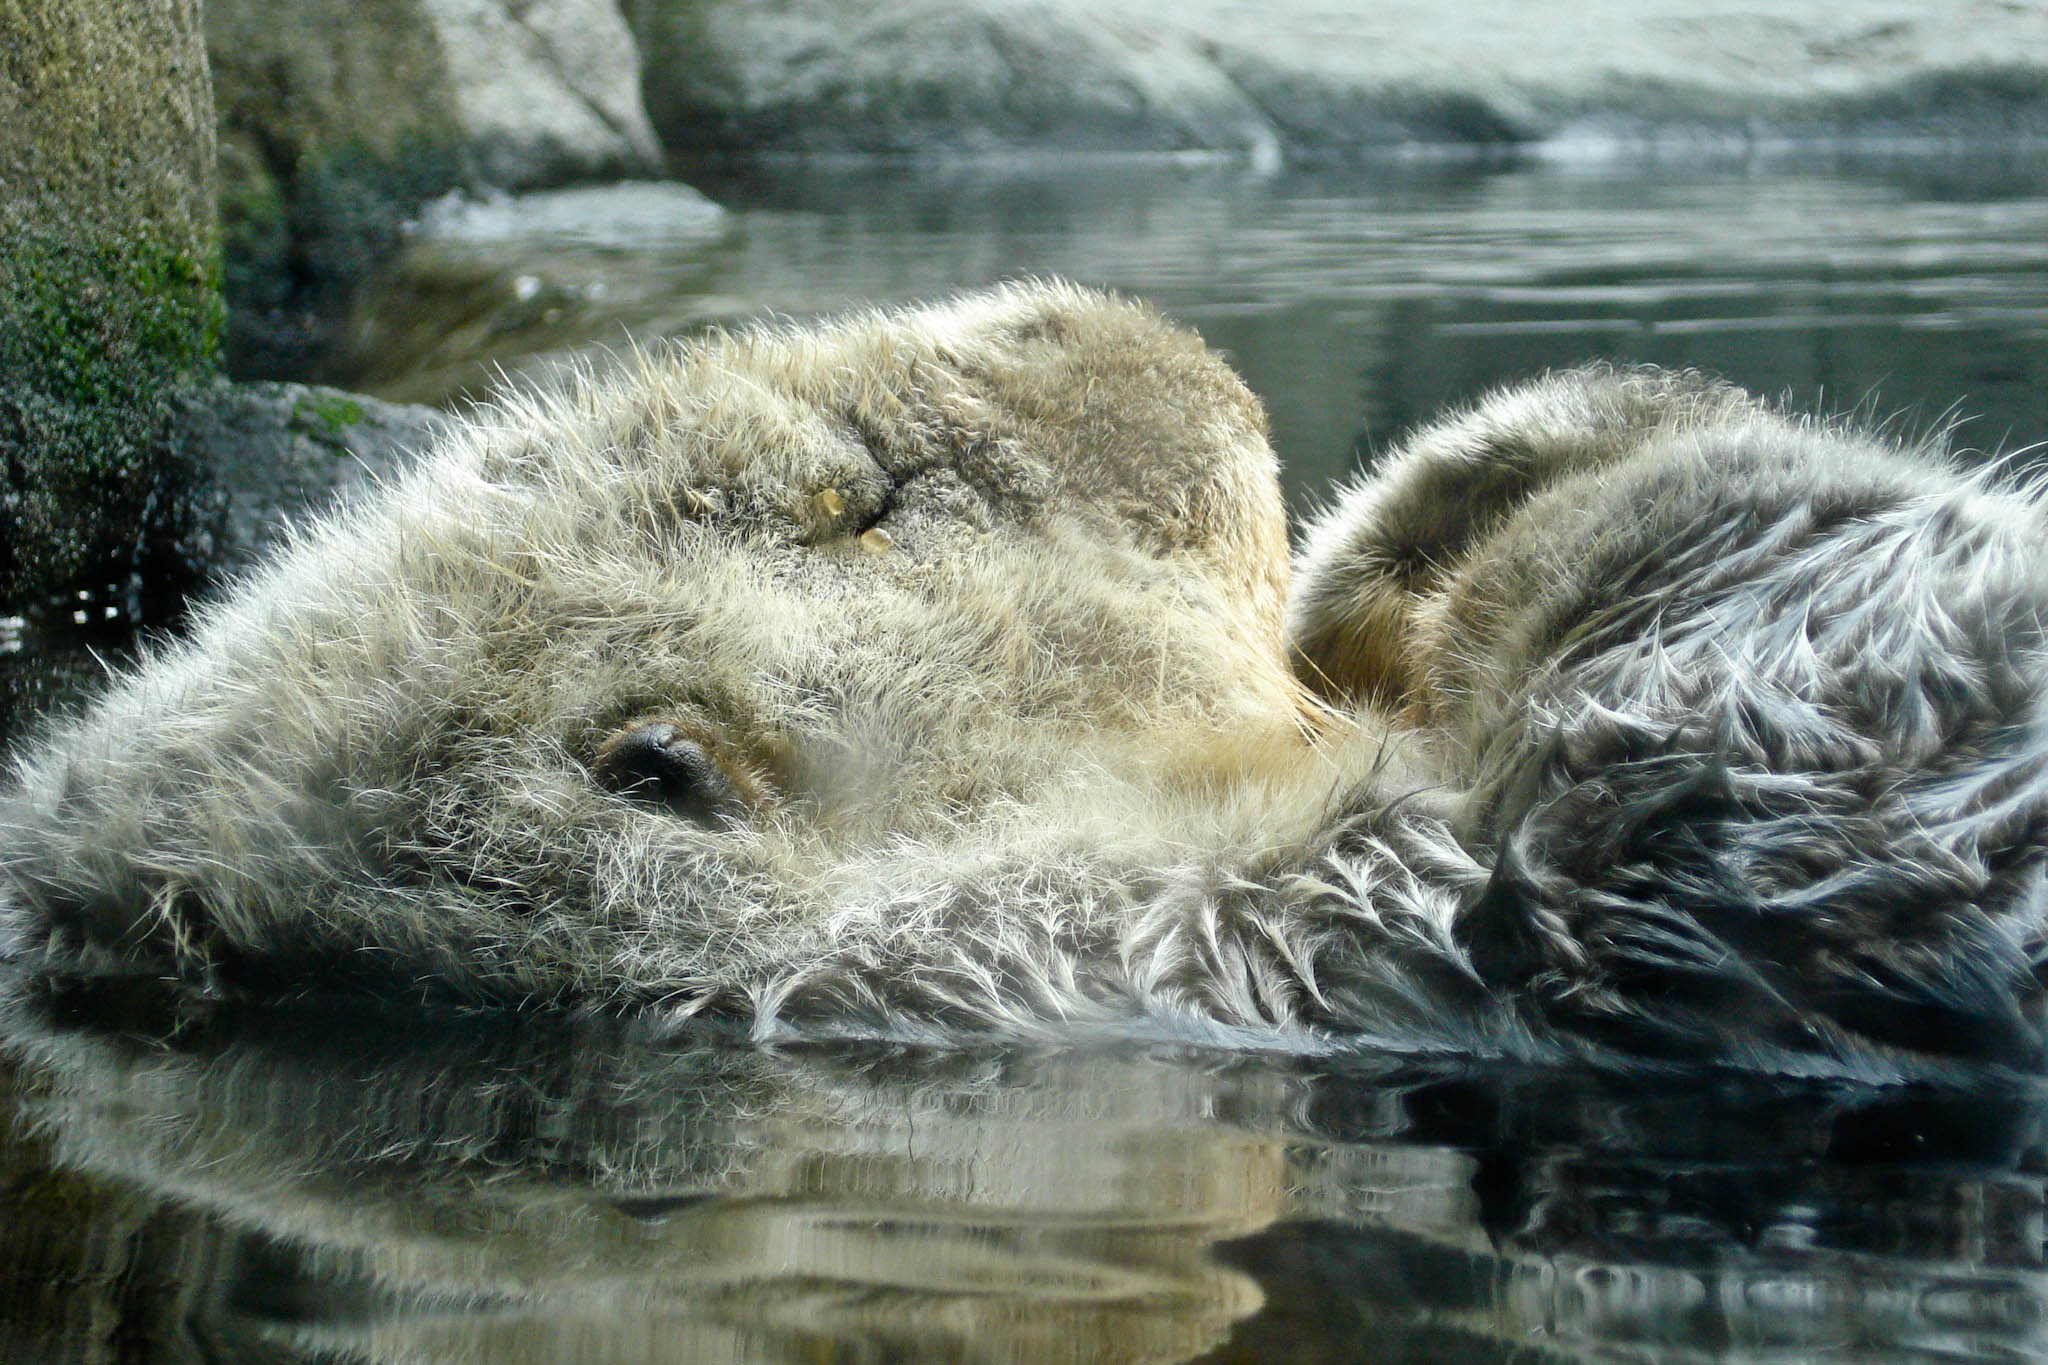 Sea Otter Snoozes So Peacefully